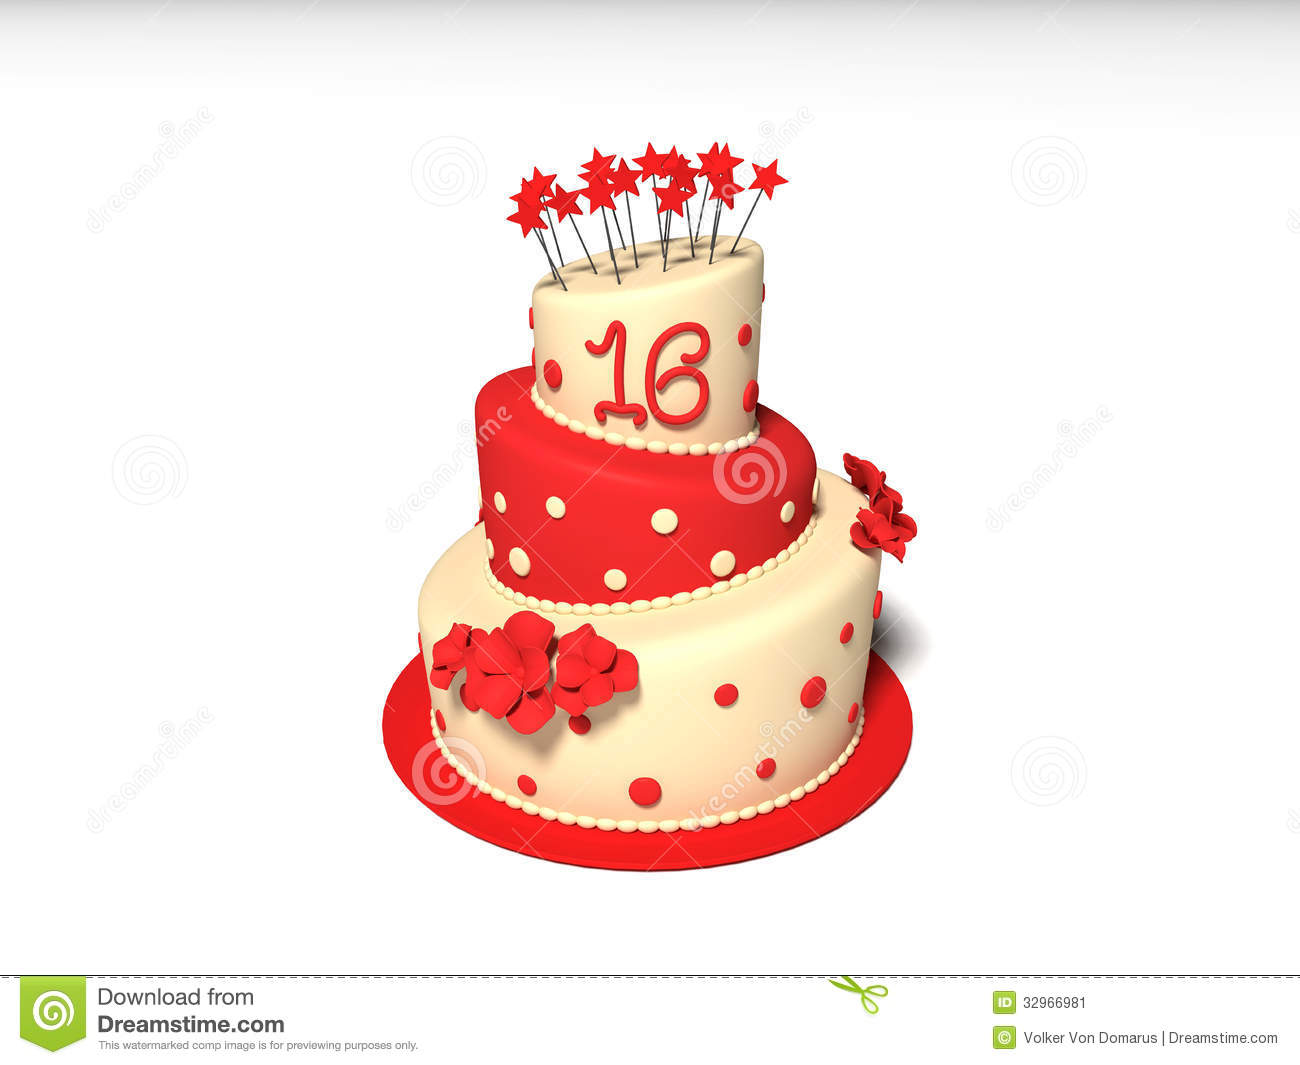 Birthday Cake Stock Image - Image: 32966981